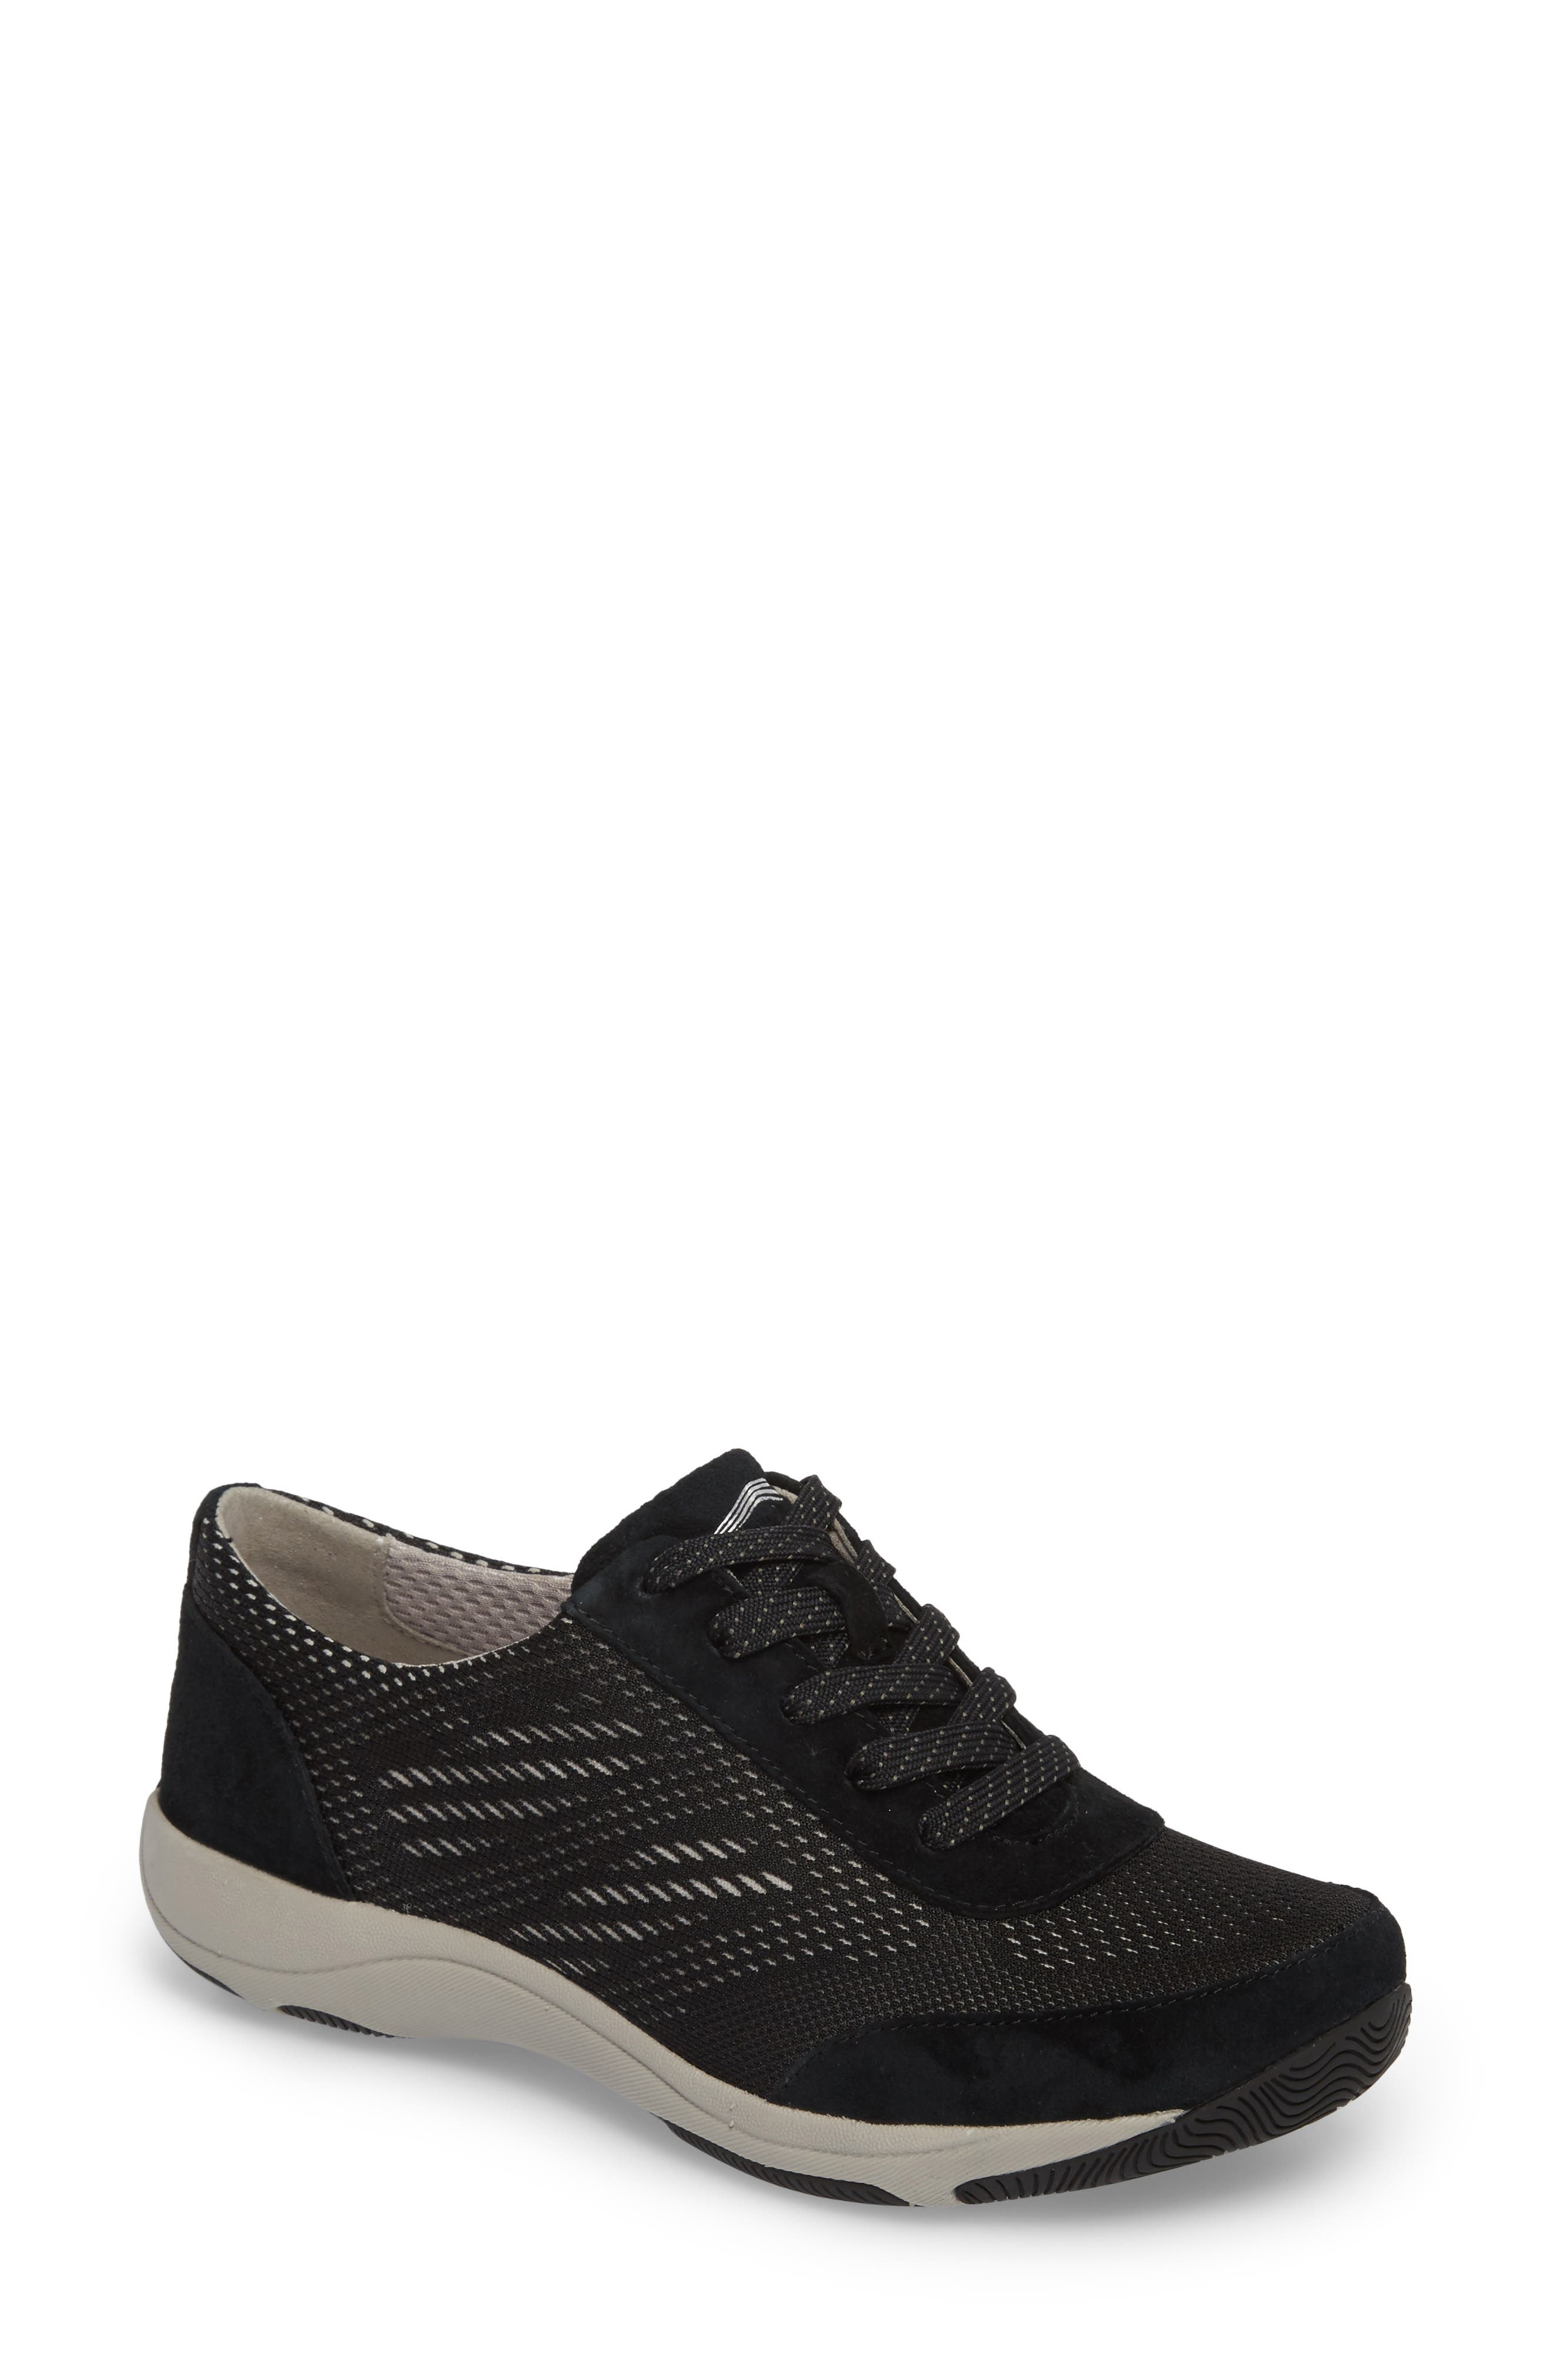 Hayes Sneaker,                         Main,                         color,